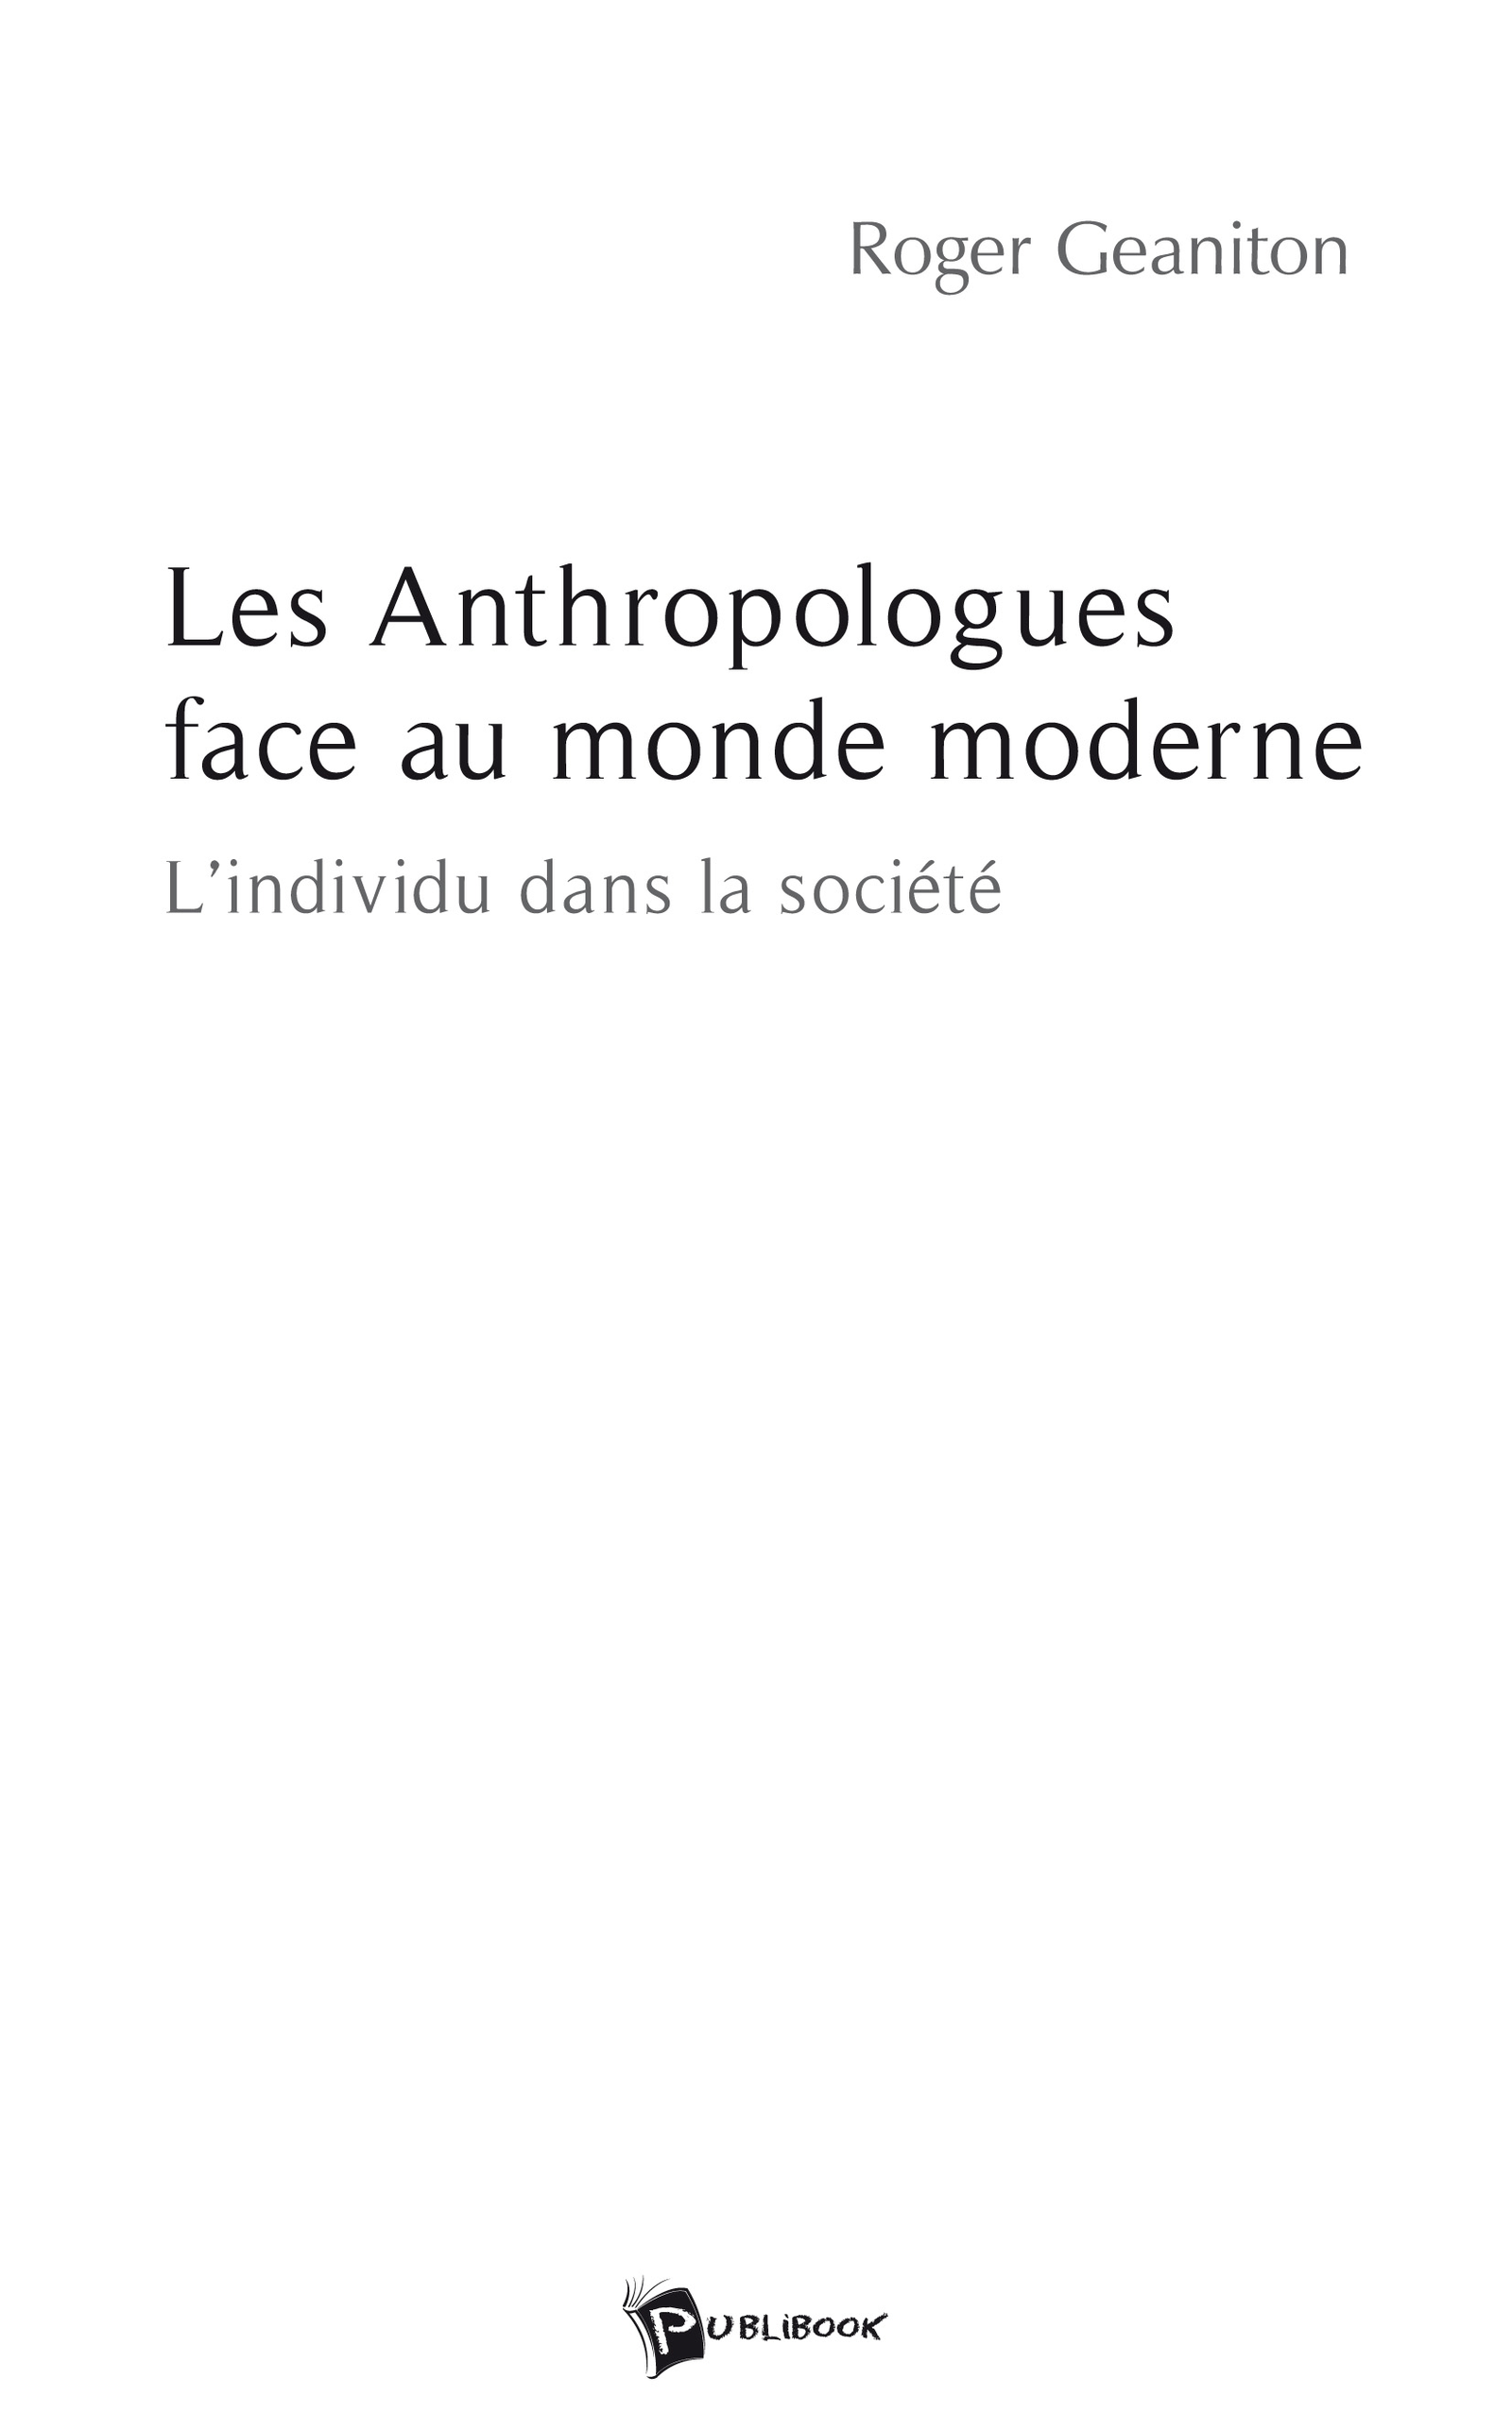 Les Anthropologues face au monde moderne